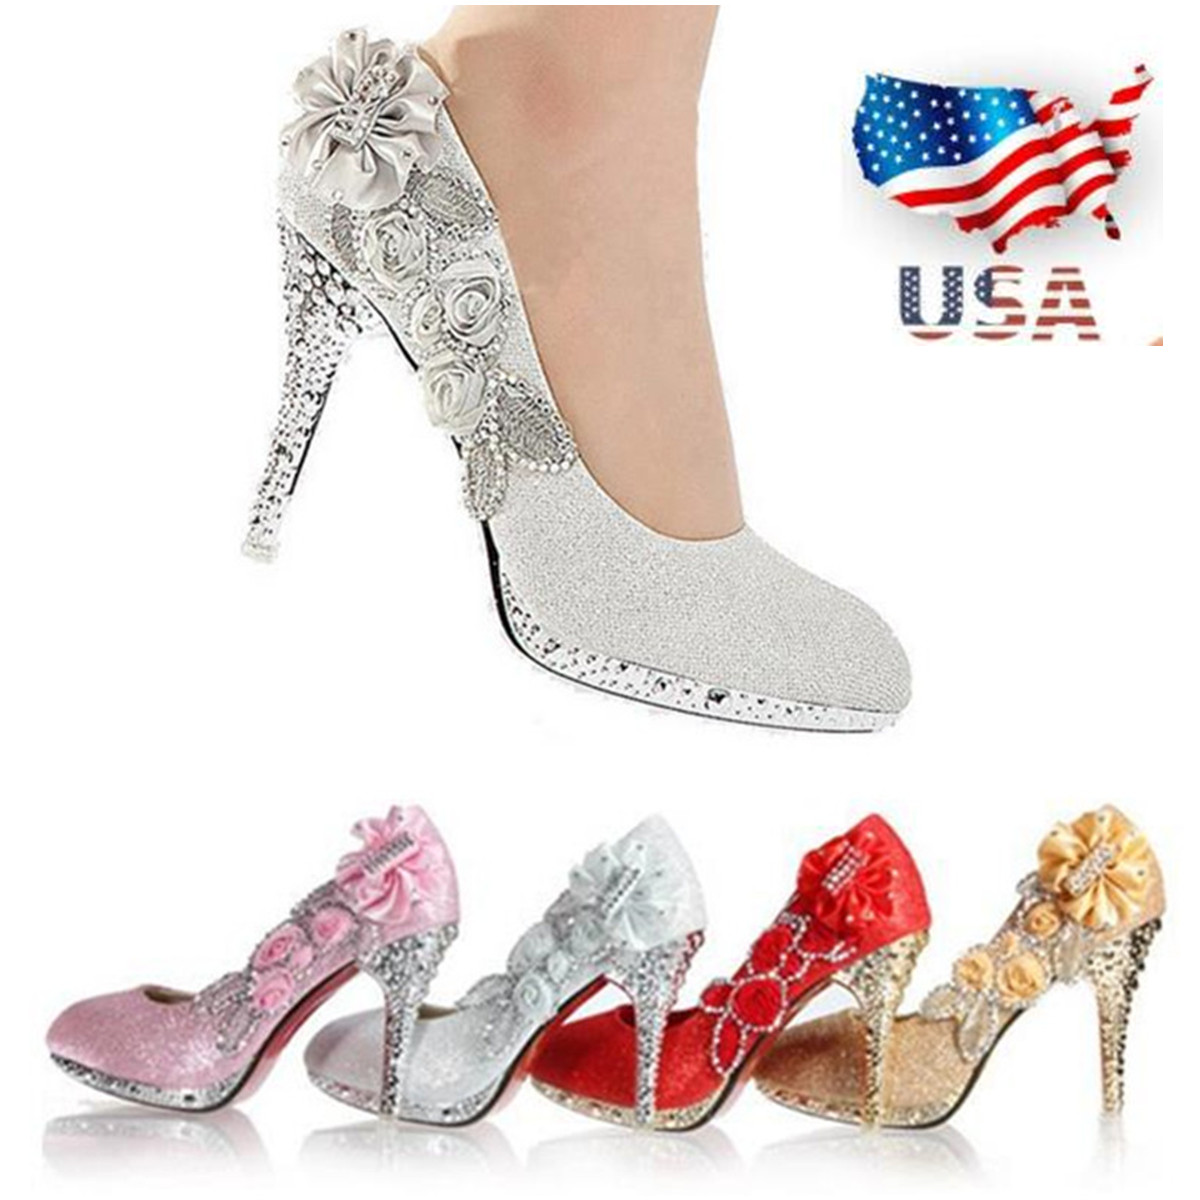 info for offer discounts affordable price Details about US 8CM Women Bridal Wedding High Heels Glitter Flower Shoes  Crystal Dance Party